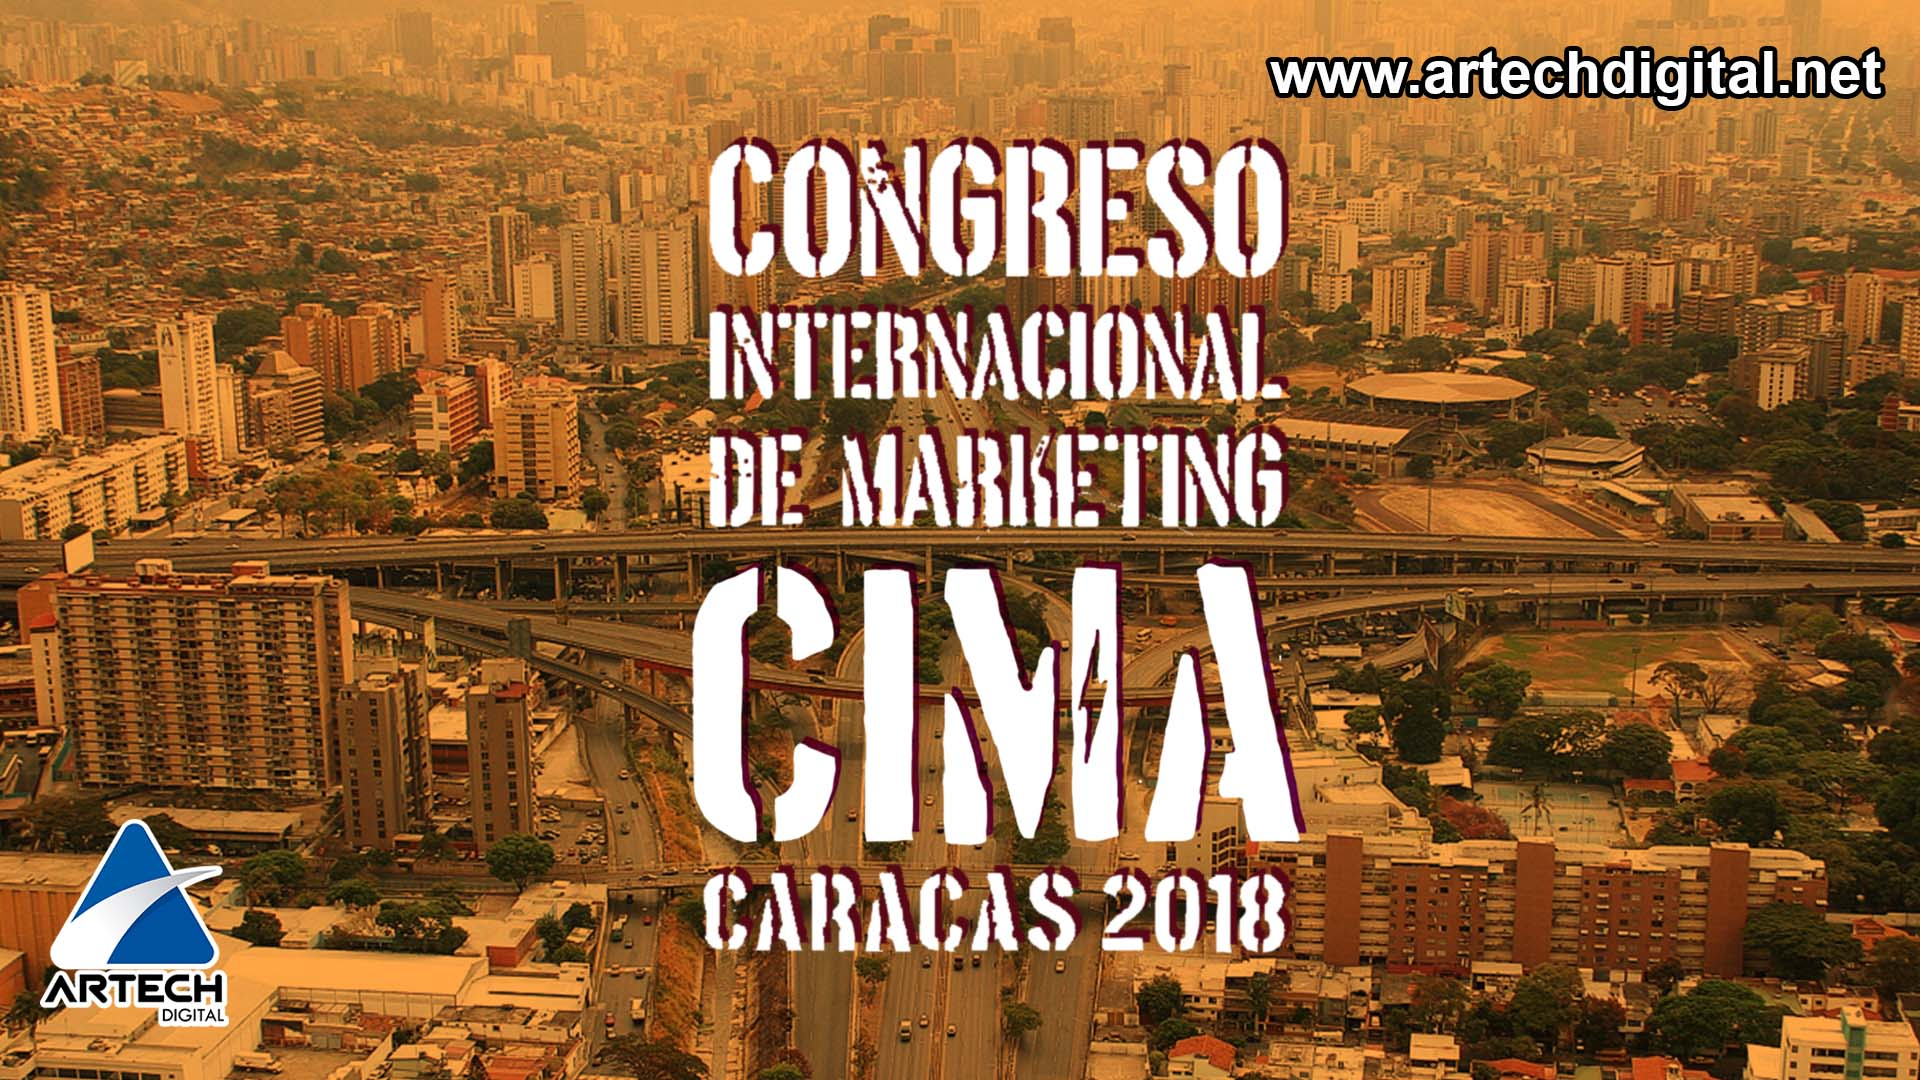 CIMA Congreso Internacional de Marketing - Artech Digital